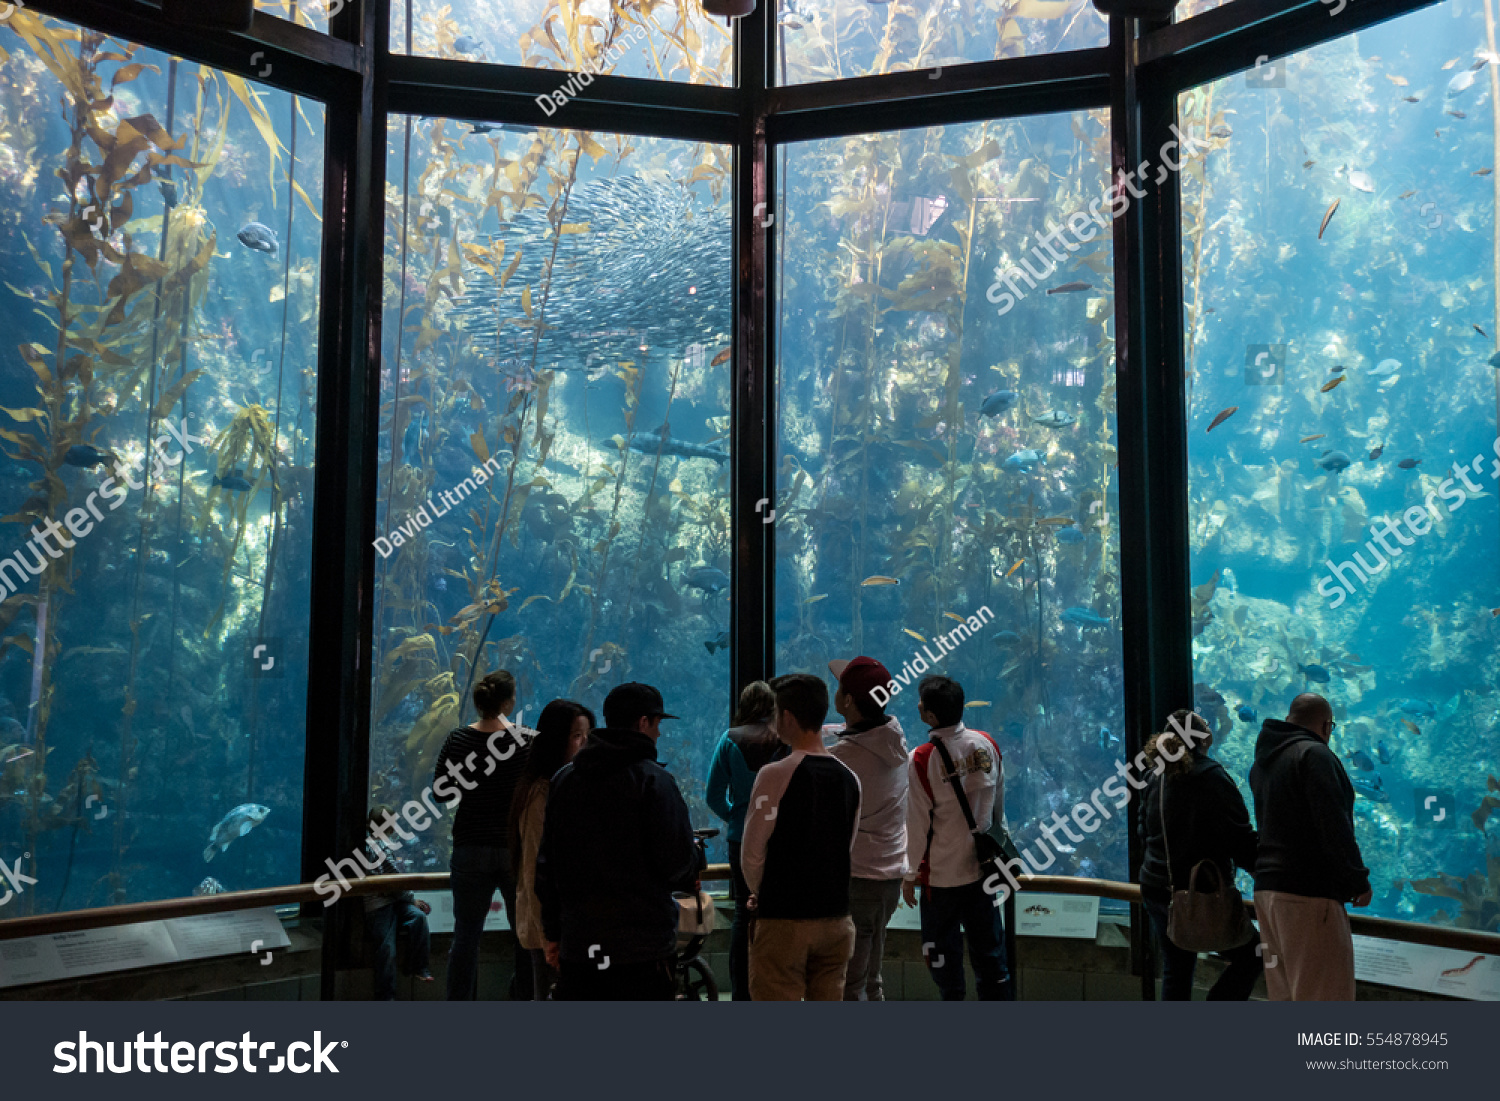 Monterey, California - January 12, 2017: Tourists enjoy the Kelp Forest exhibit at the Monterey Bay Aquarium which highlights ocean life in the local Pacific Coast kelp beds,  It is 28 feet deep.